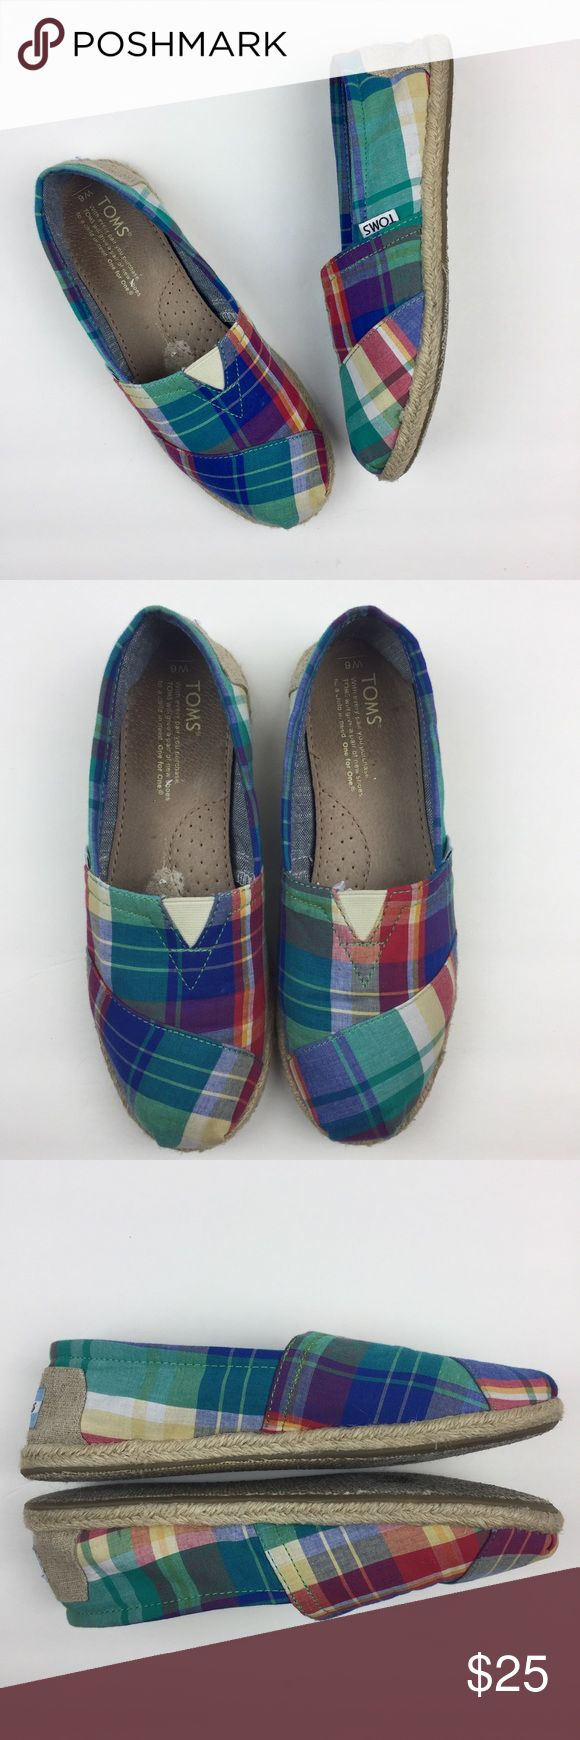 TOMS Madras Plaid Classic Flat Shoes TOMS classics in a madras plaid. Perfect for Summer! Woven jute outsole. Pre-owned condition. Soles show normal signs of wear and there is a mark/spot on the one insole (see last pic). Uppers are in good condition. ❗️PRICE IS FIRM❗️❌NO TRADES❌NO PAYPAL❌ TOMS Shoes Flats & Loafers